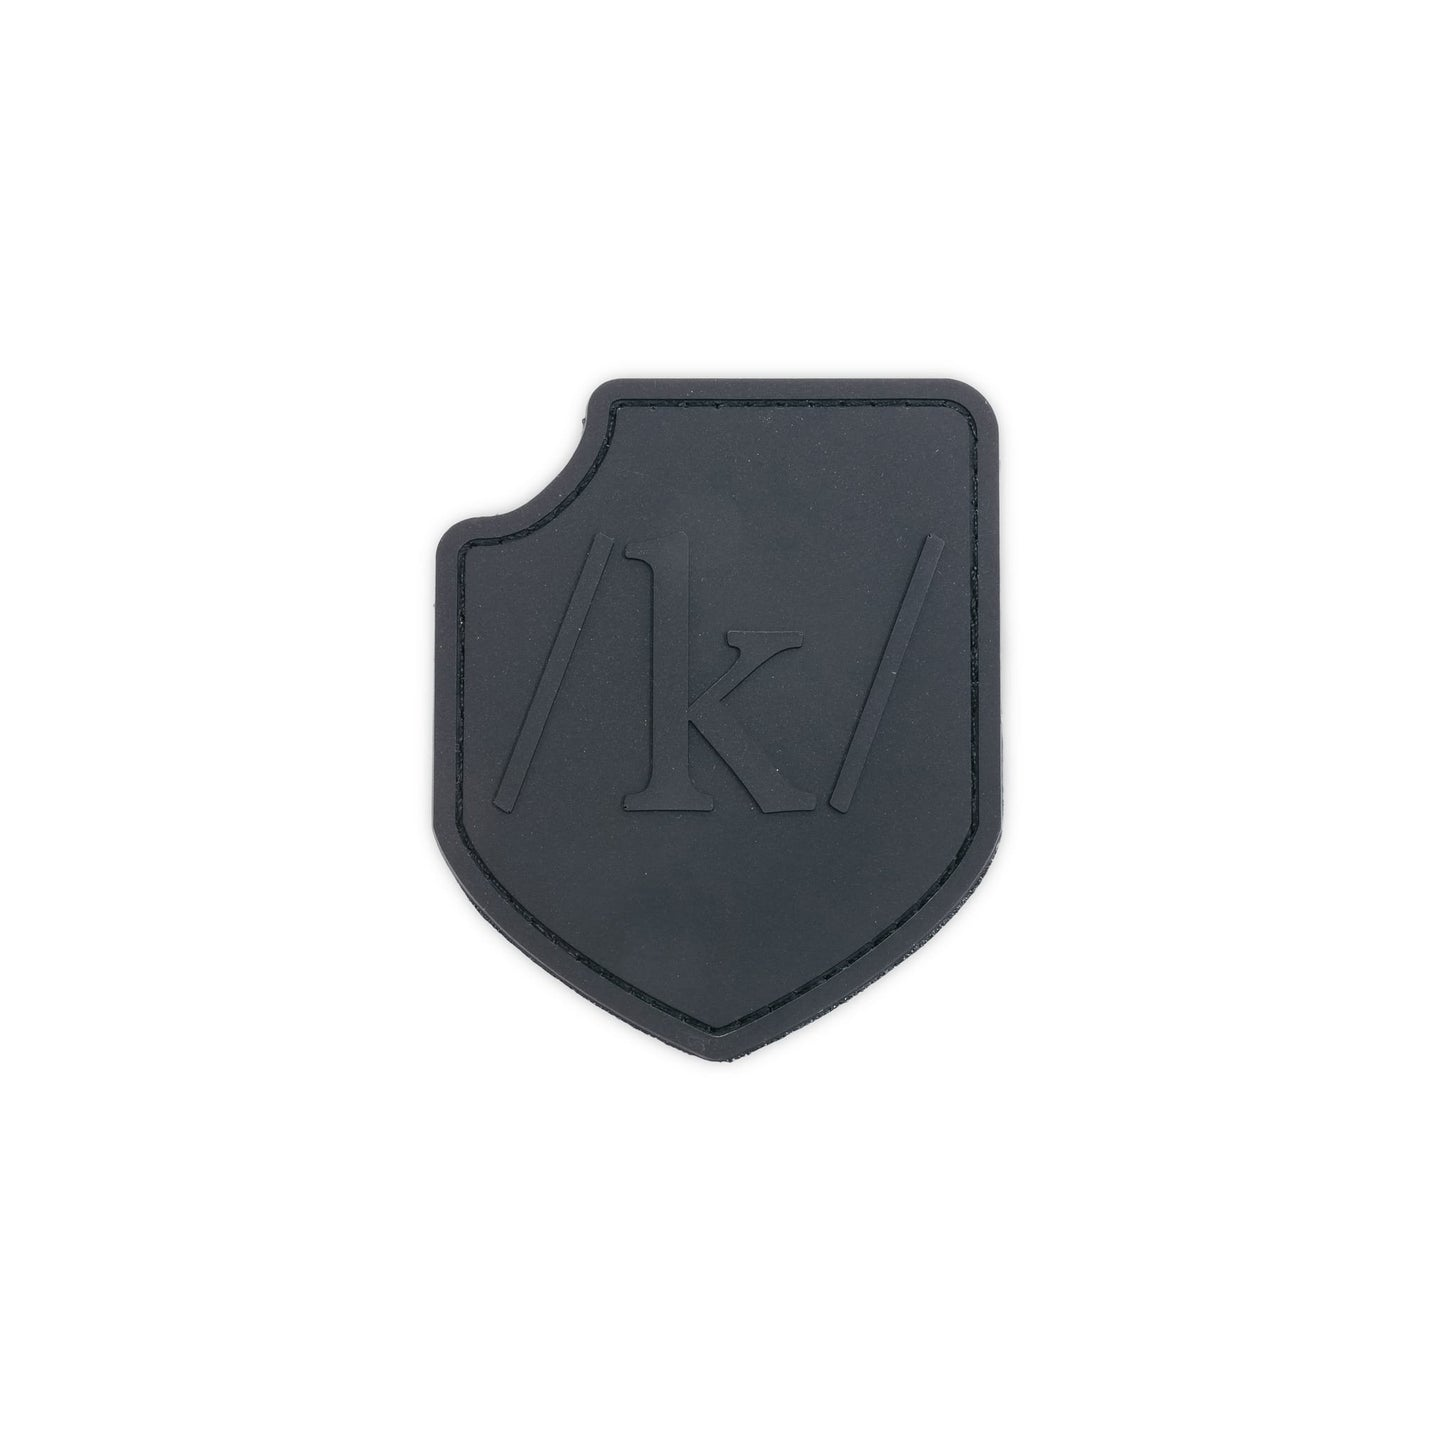 /k/ Shield PVC Patch